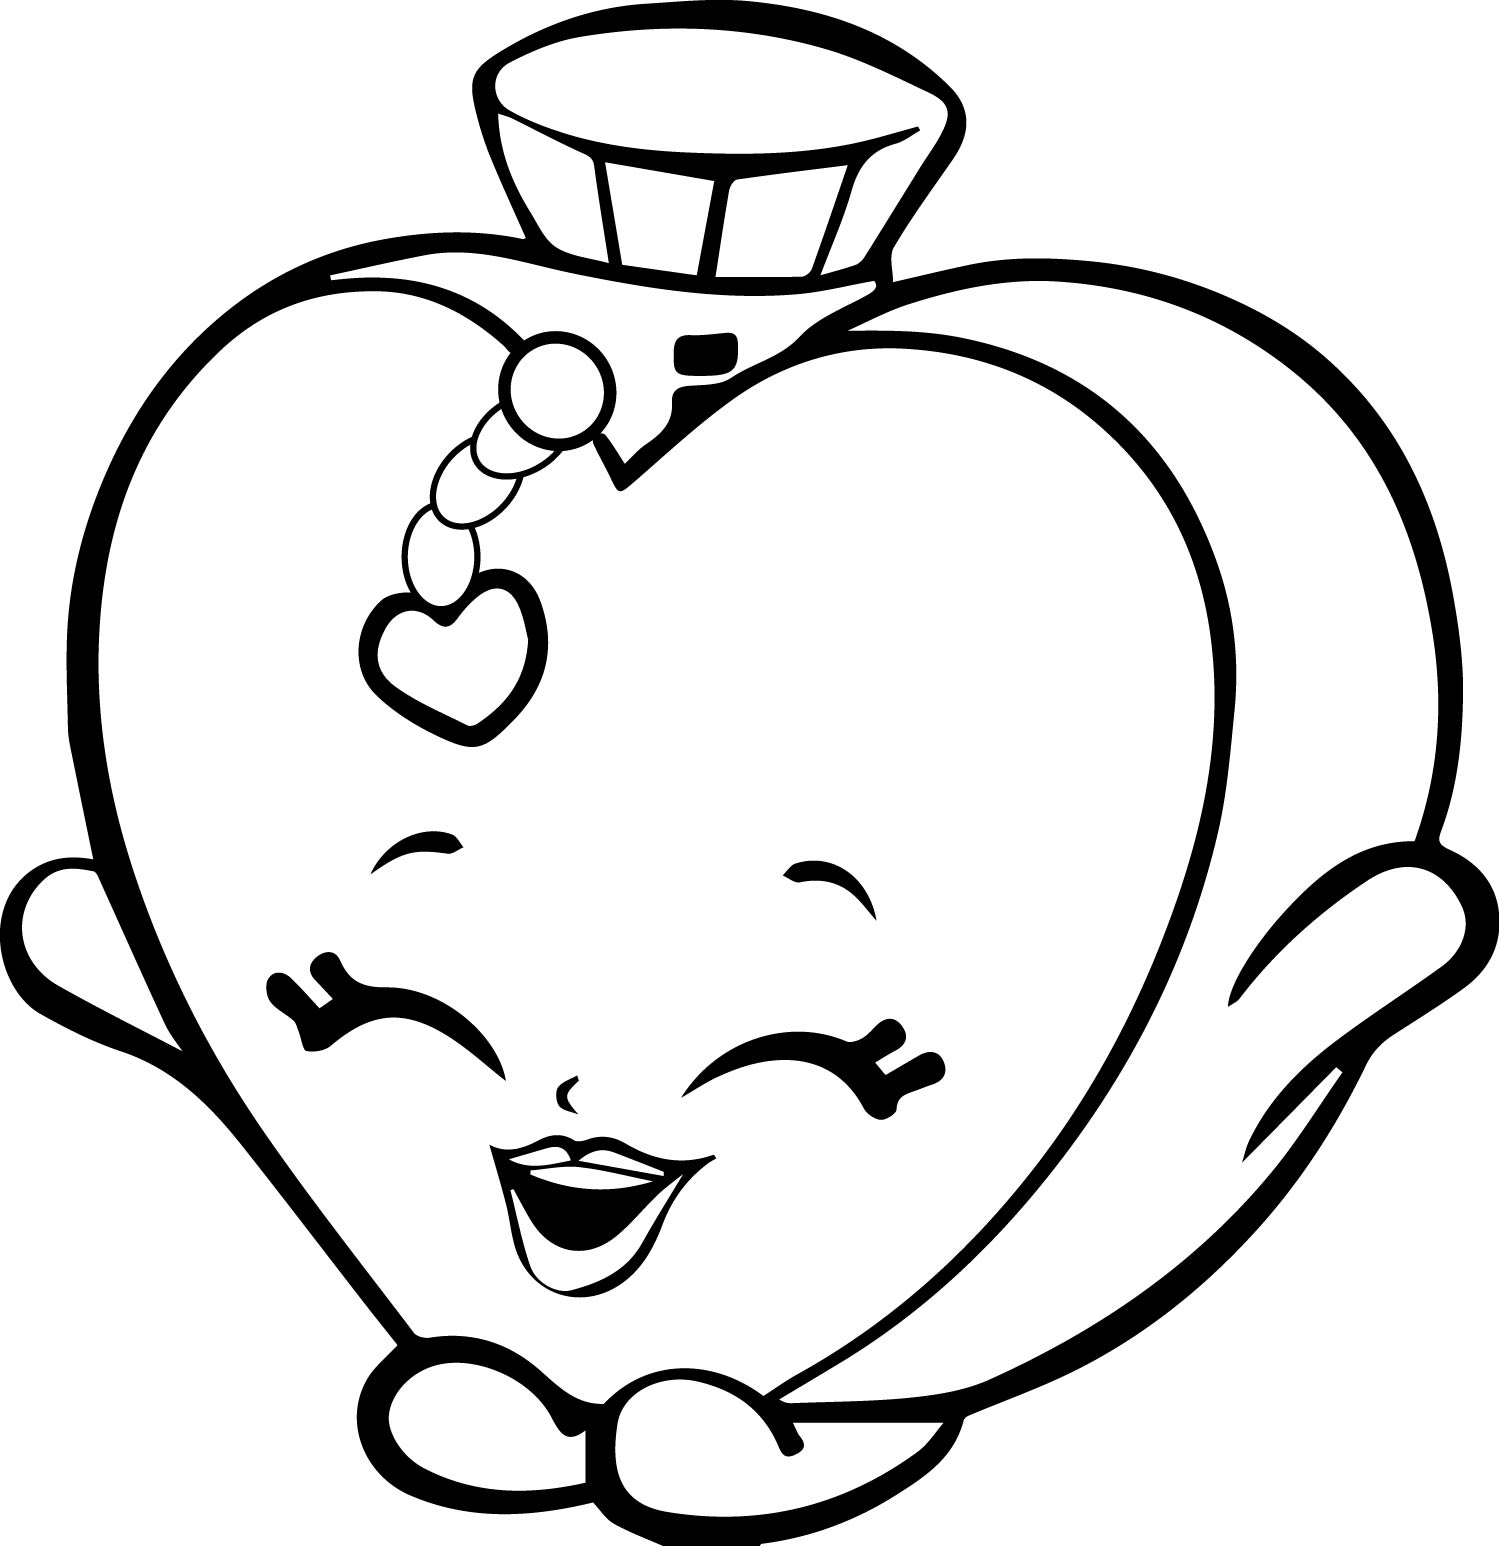 Coloring games of shopkins - Shopkins Parfume Happy Coloring Page